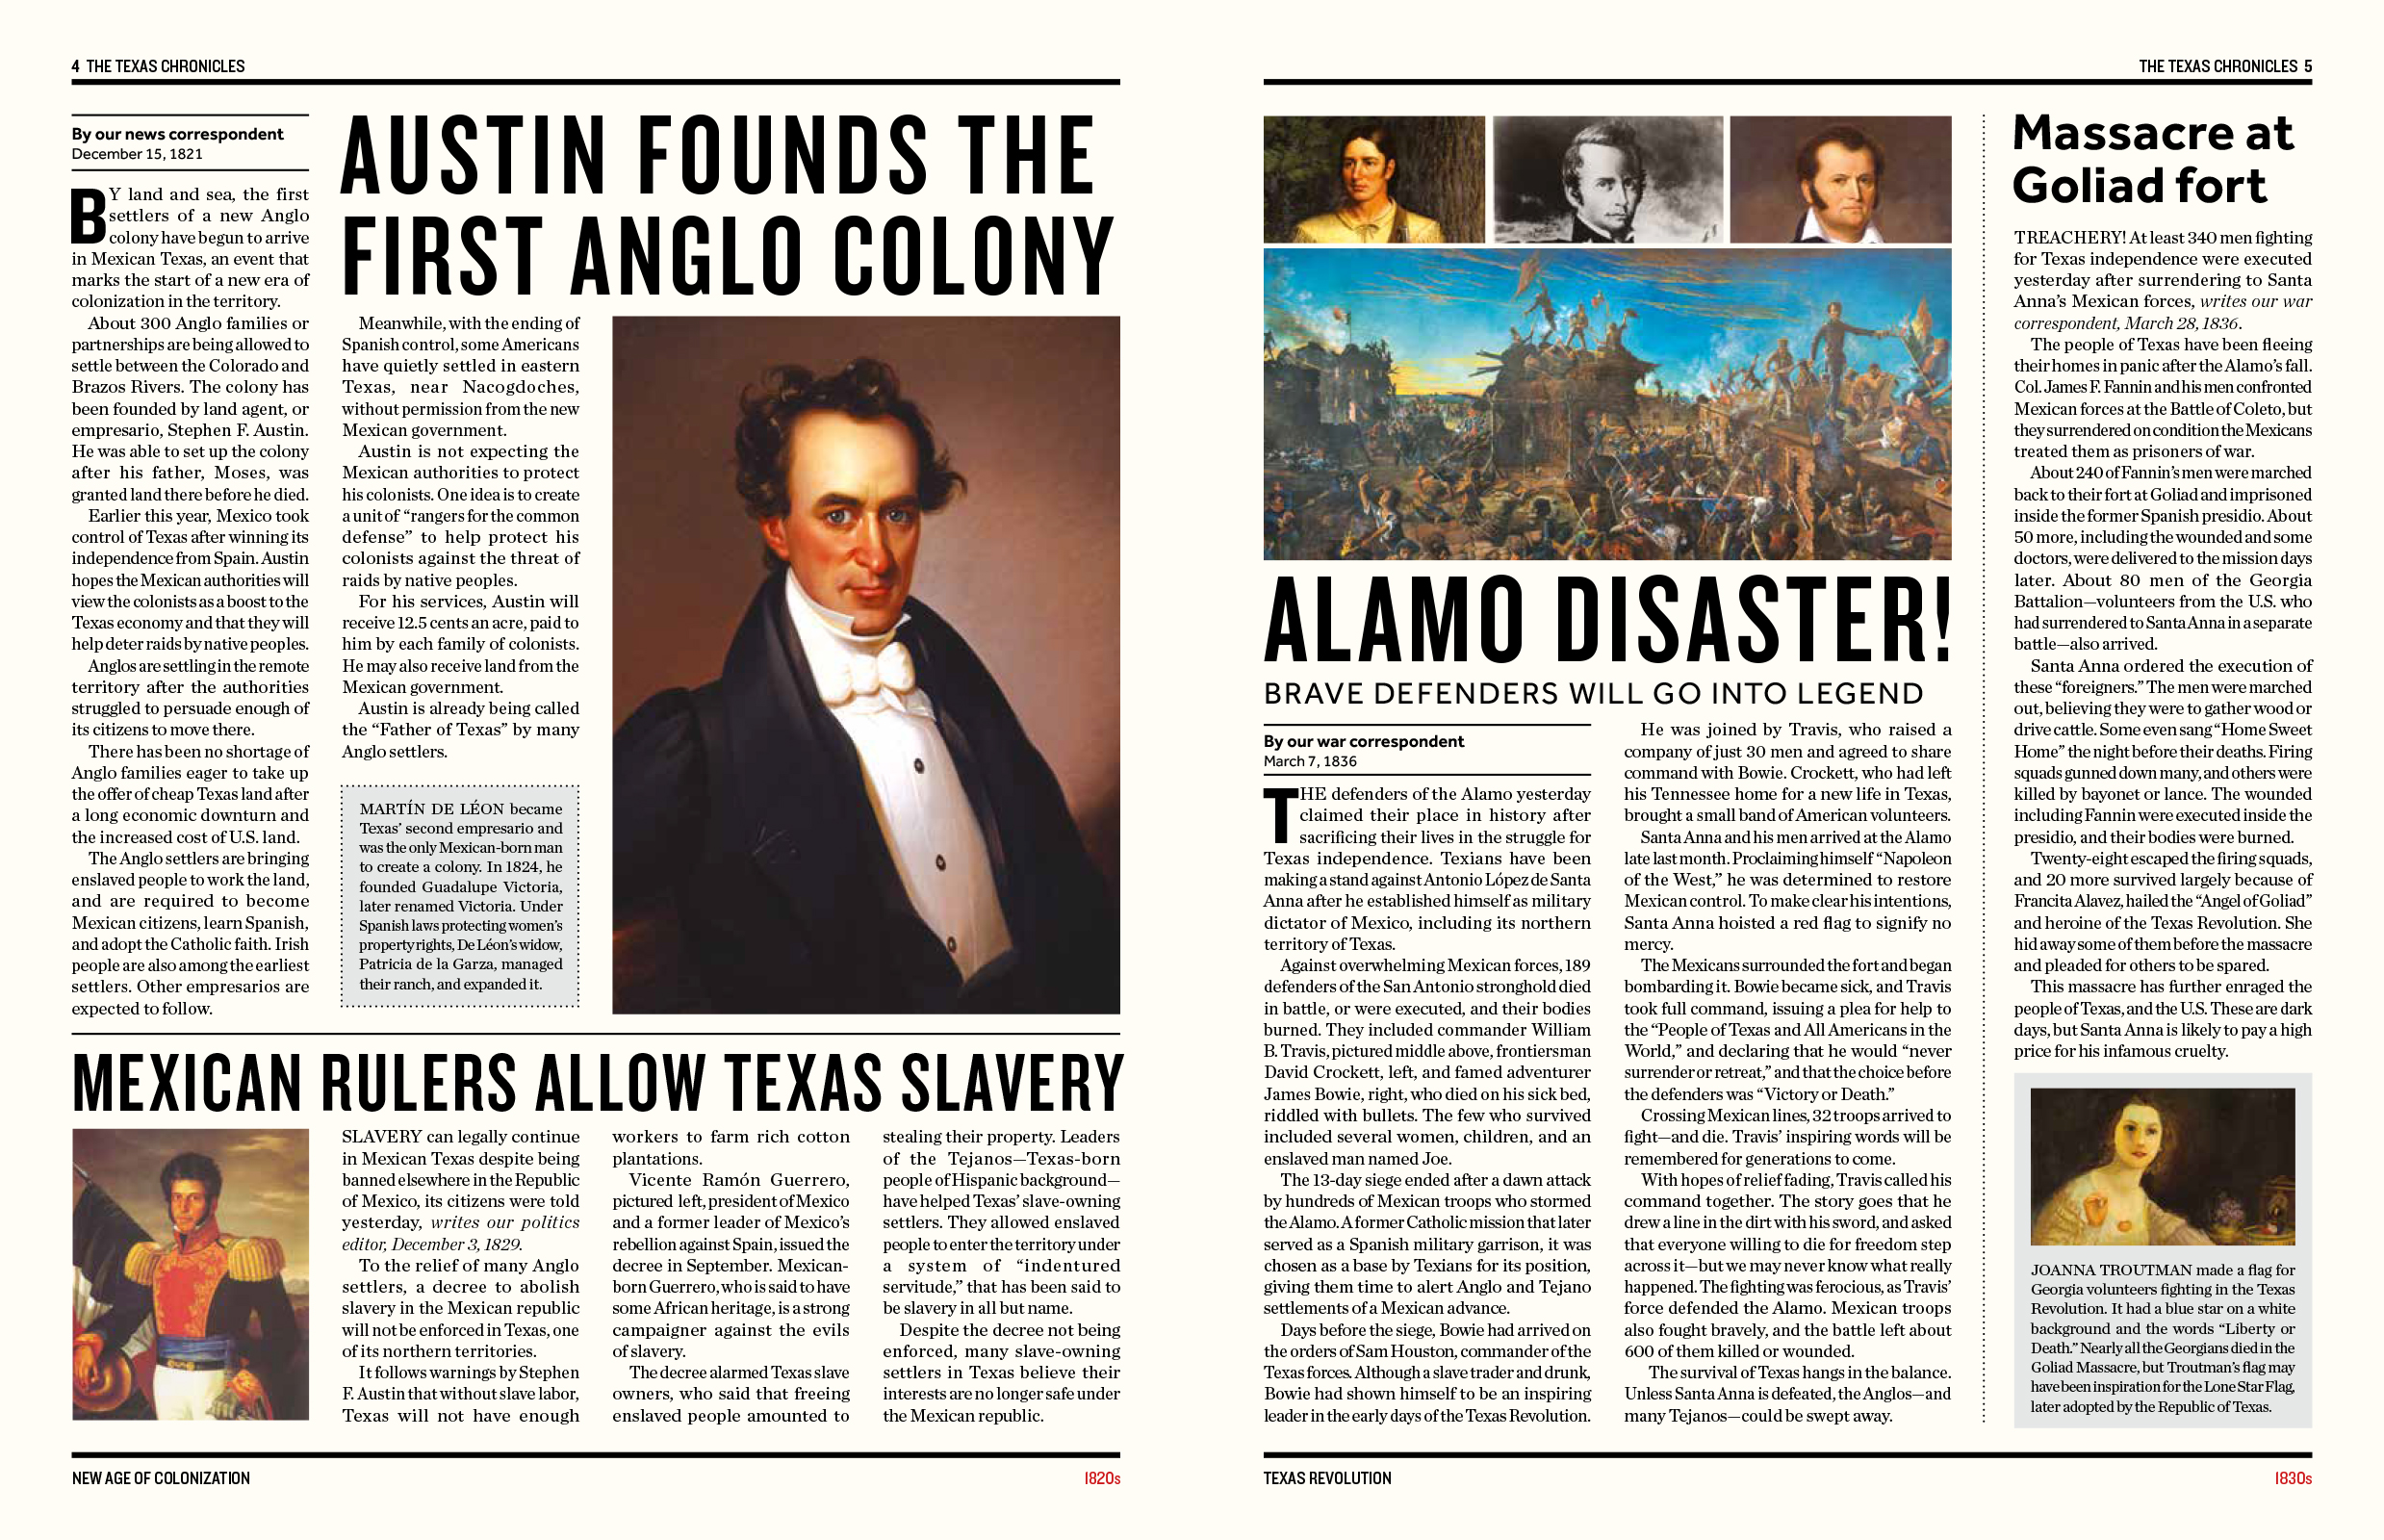 The Texas Chronicles features colorful illustrations and more than 60 newspaper-style articles detailing key moments in Texas history.